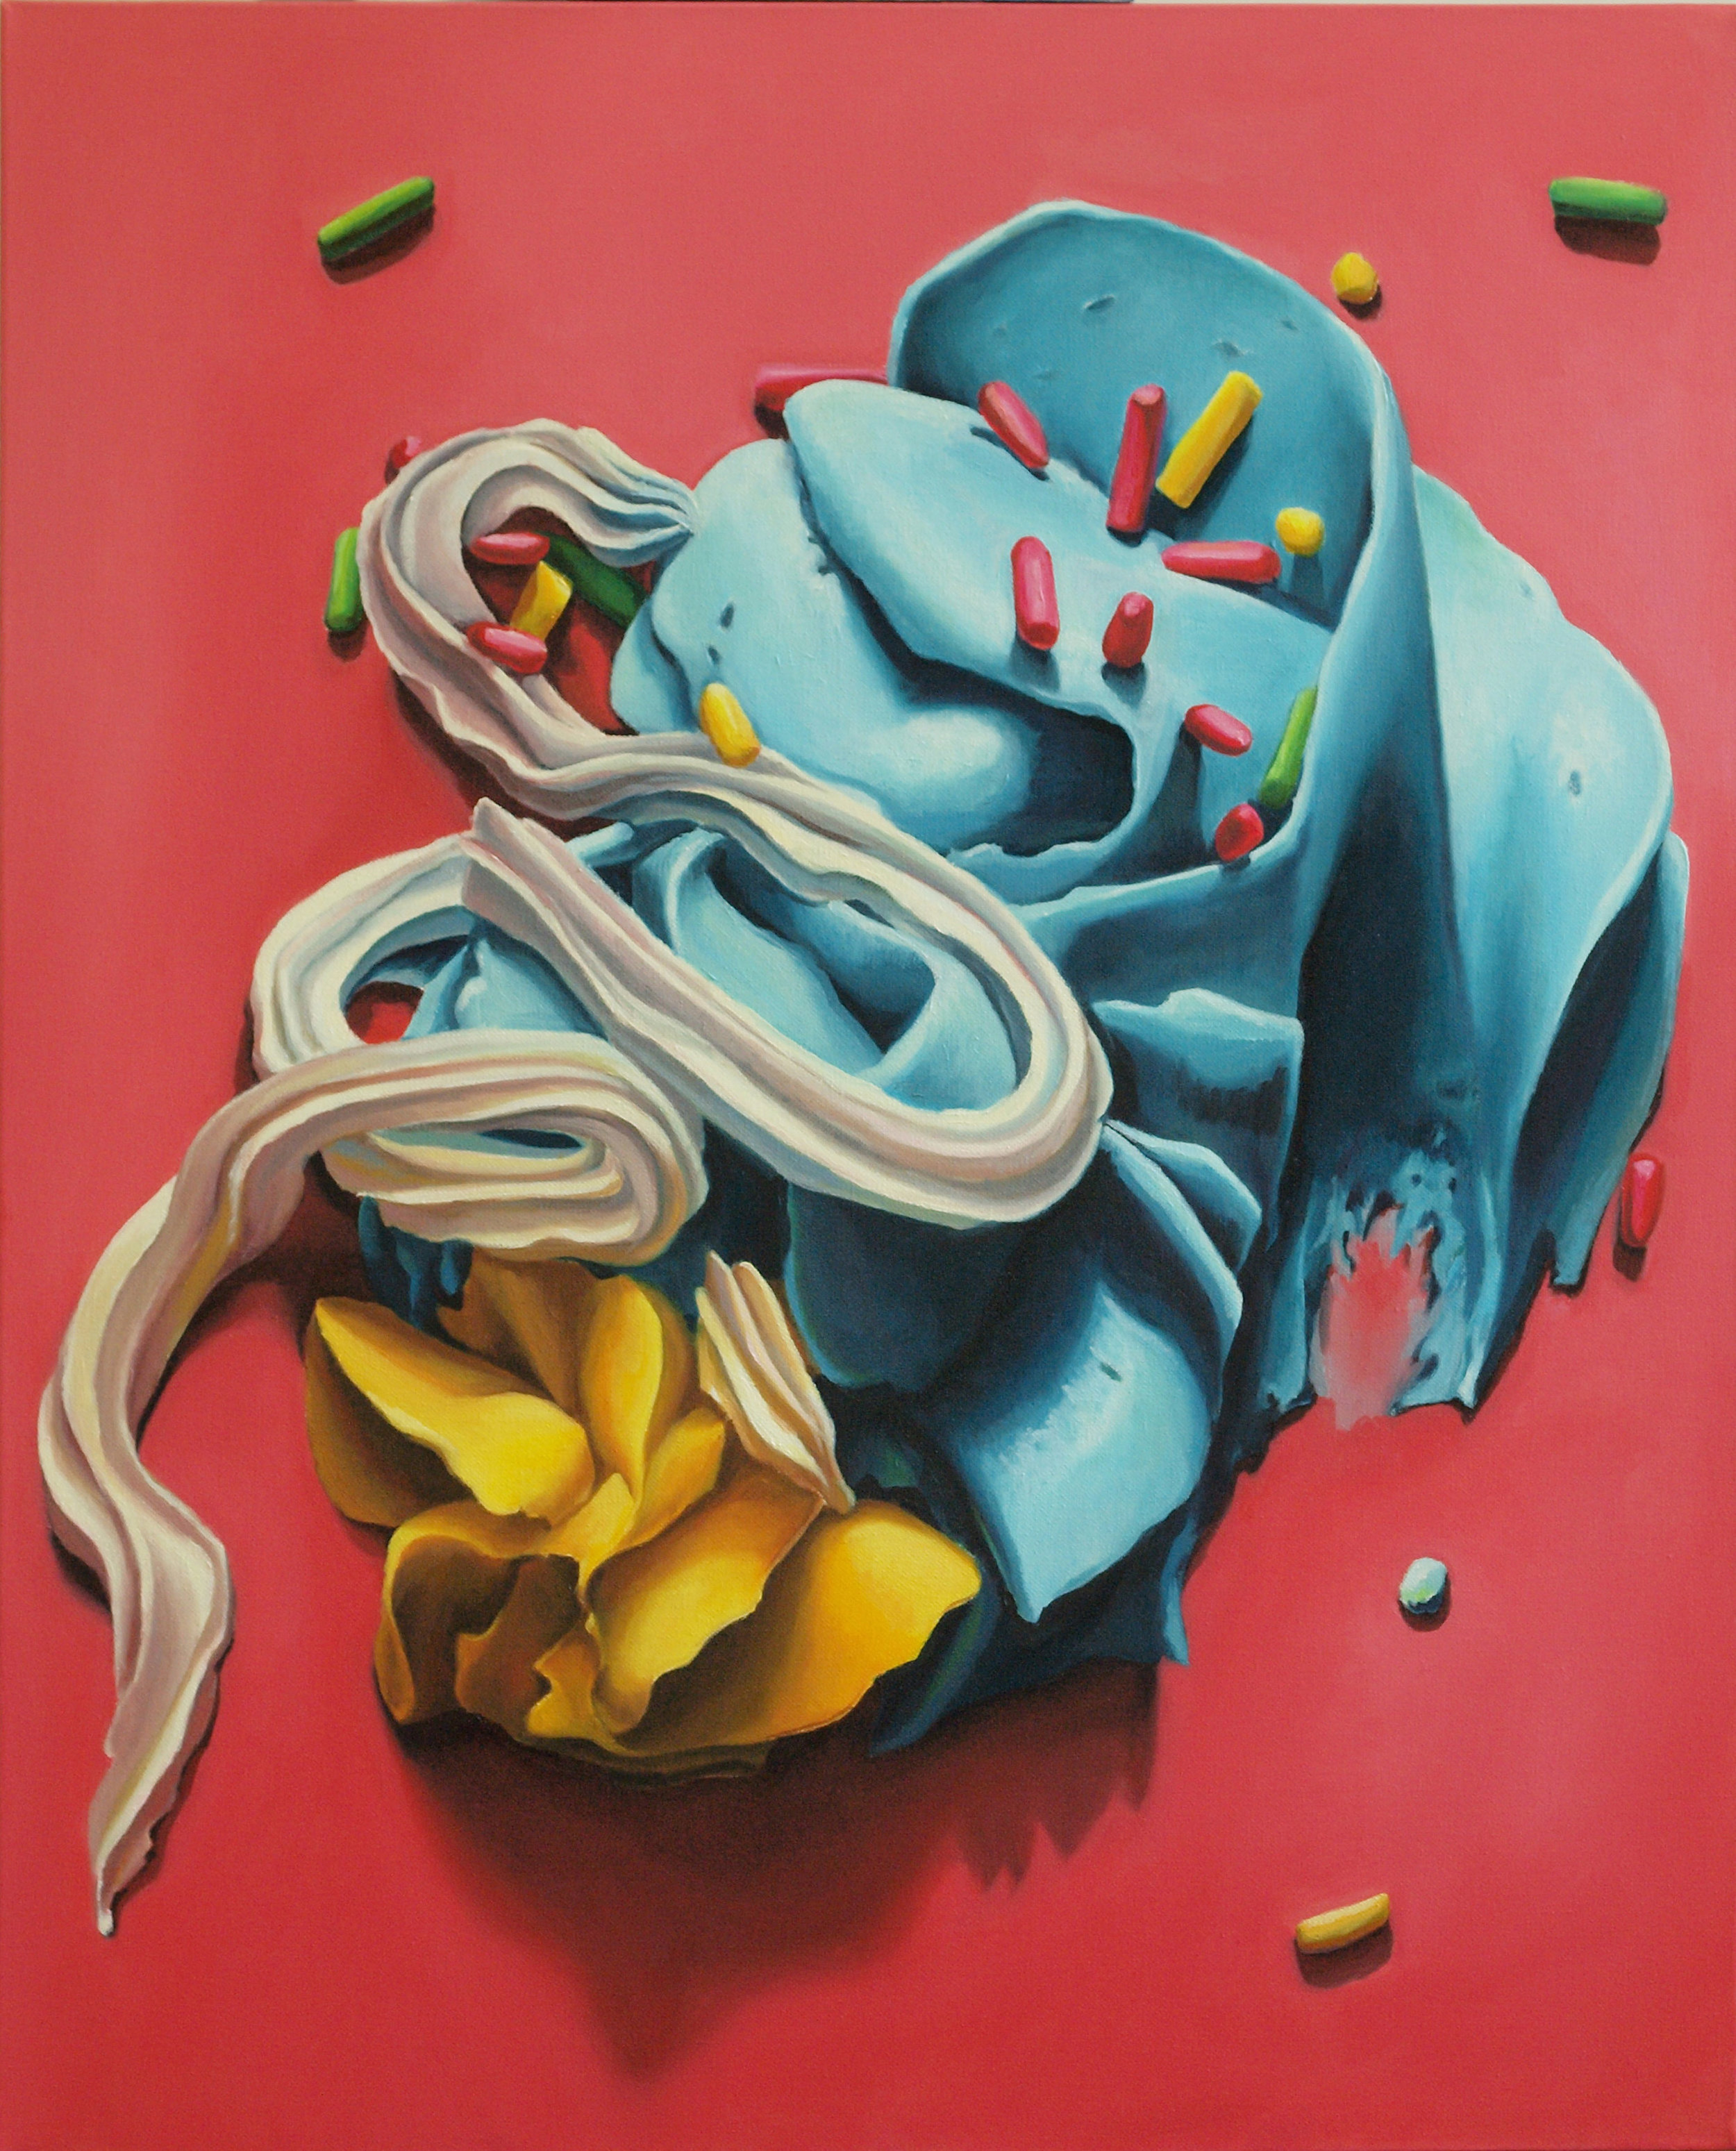 Christi Harris , Sugar Shock , 2011, Oil on canvas, 30 × 24 in  View on Artsy       76.2 × 61 cm